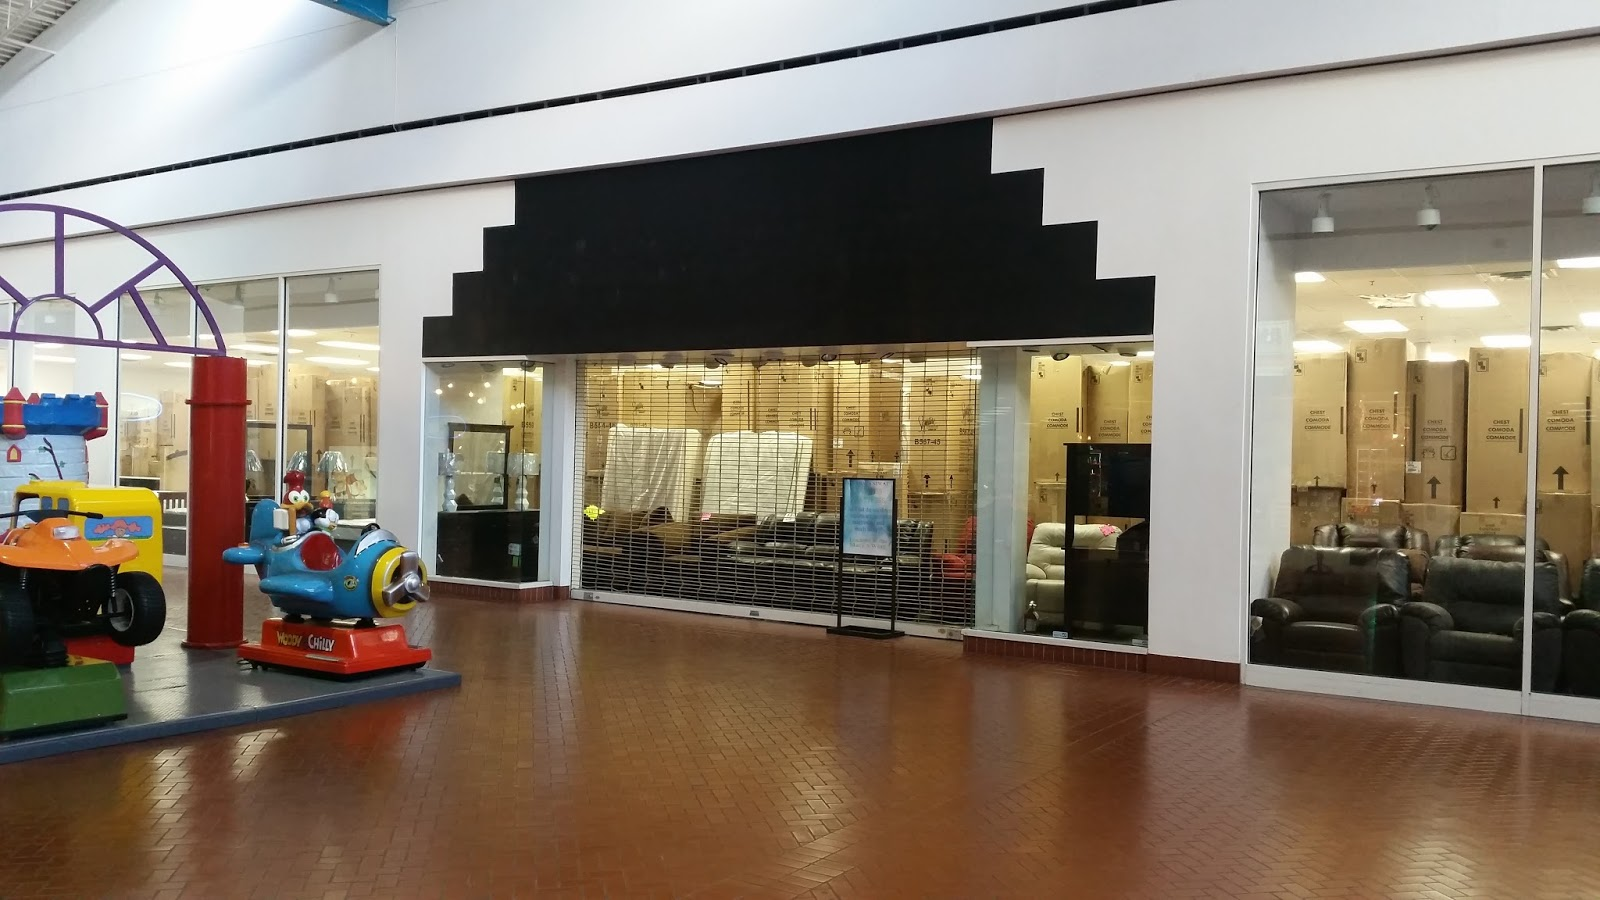 The Former Anna S Linens Closed Several Years Ago And Is Now Used For Furniture Storage One Of Few Remaining Businesses In This Section Mall